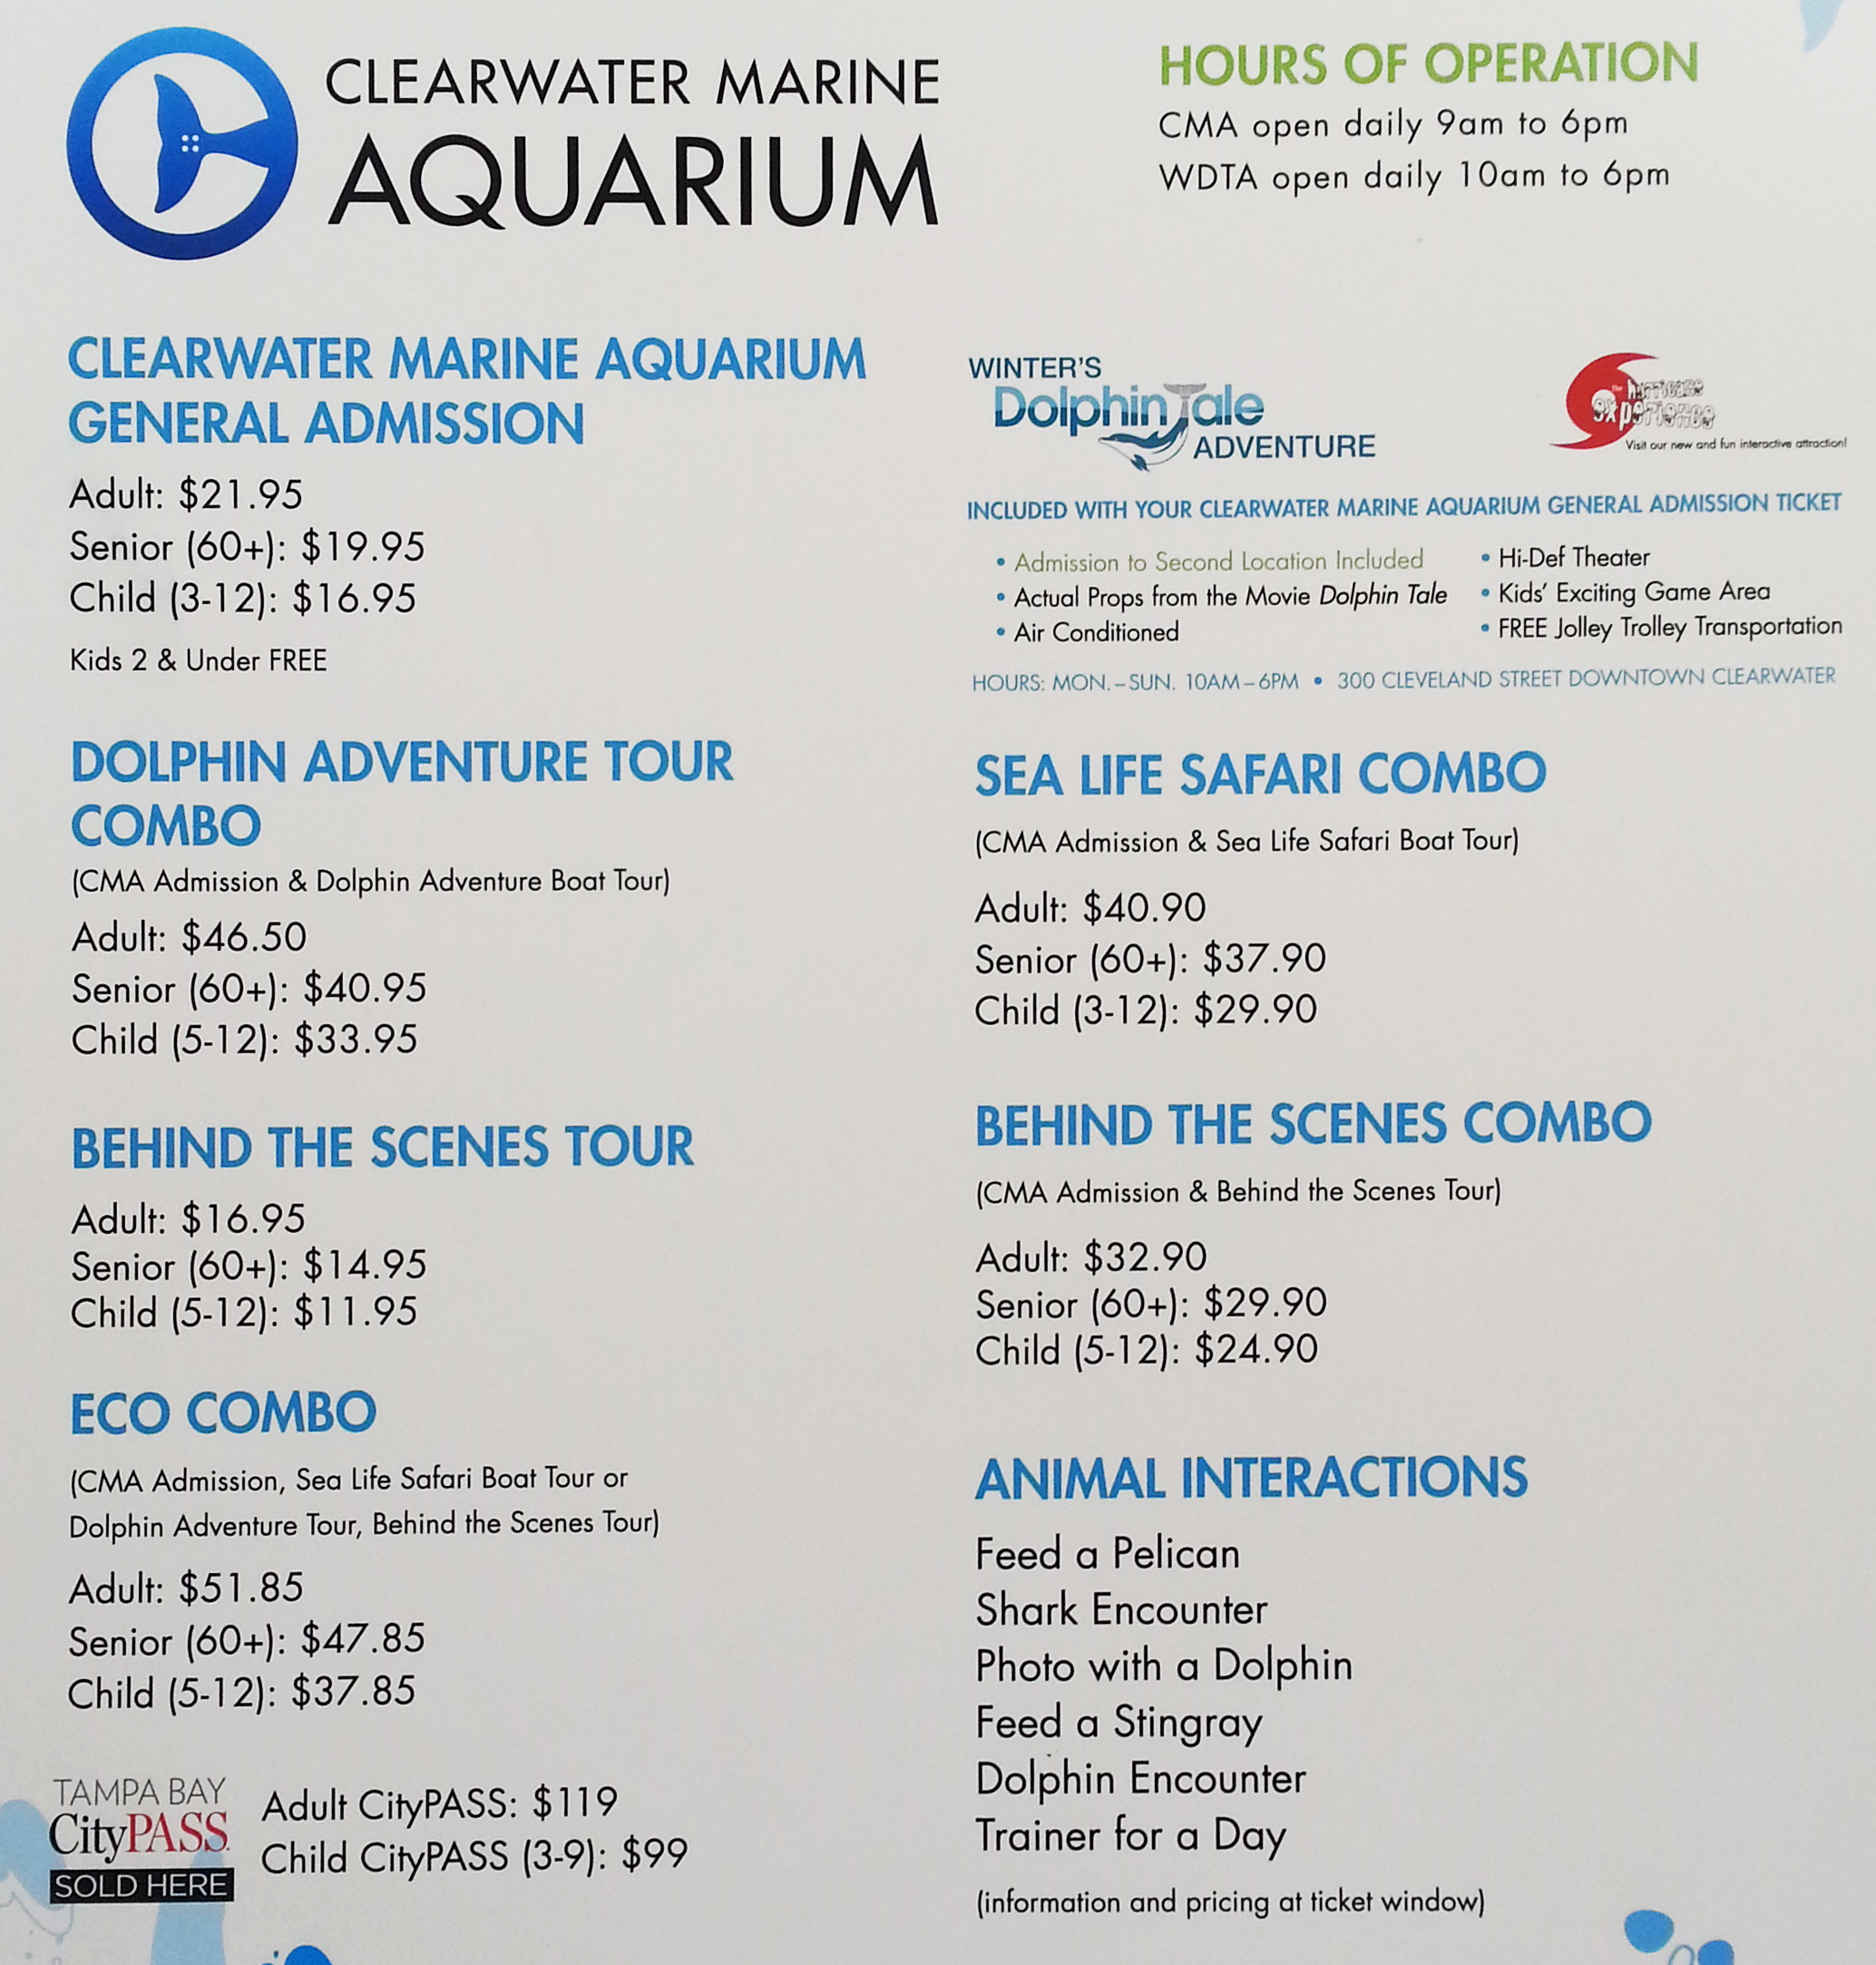 Clearwater Marine Aquarium (CMA) | Floridaography…… on eckerd college map, coral springs fl map, miami seaquarium map, downtown clearwater map, fort de soto park map, mystic aquarium map, discovery cove map, jacksonville zoo and gardens map, palm beach zoo map, university of tampa map, shedd aquarium chicago map, sand key beach map, tampa convention center map, tampa general hospital map, busch gardens map, st. pete clearwater map, raymond james stadium map, tarpon springs sponge docks map, national aquarium in baltimore map, cypress gardens map,